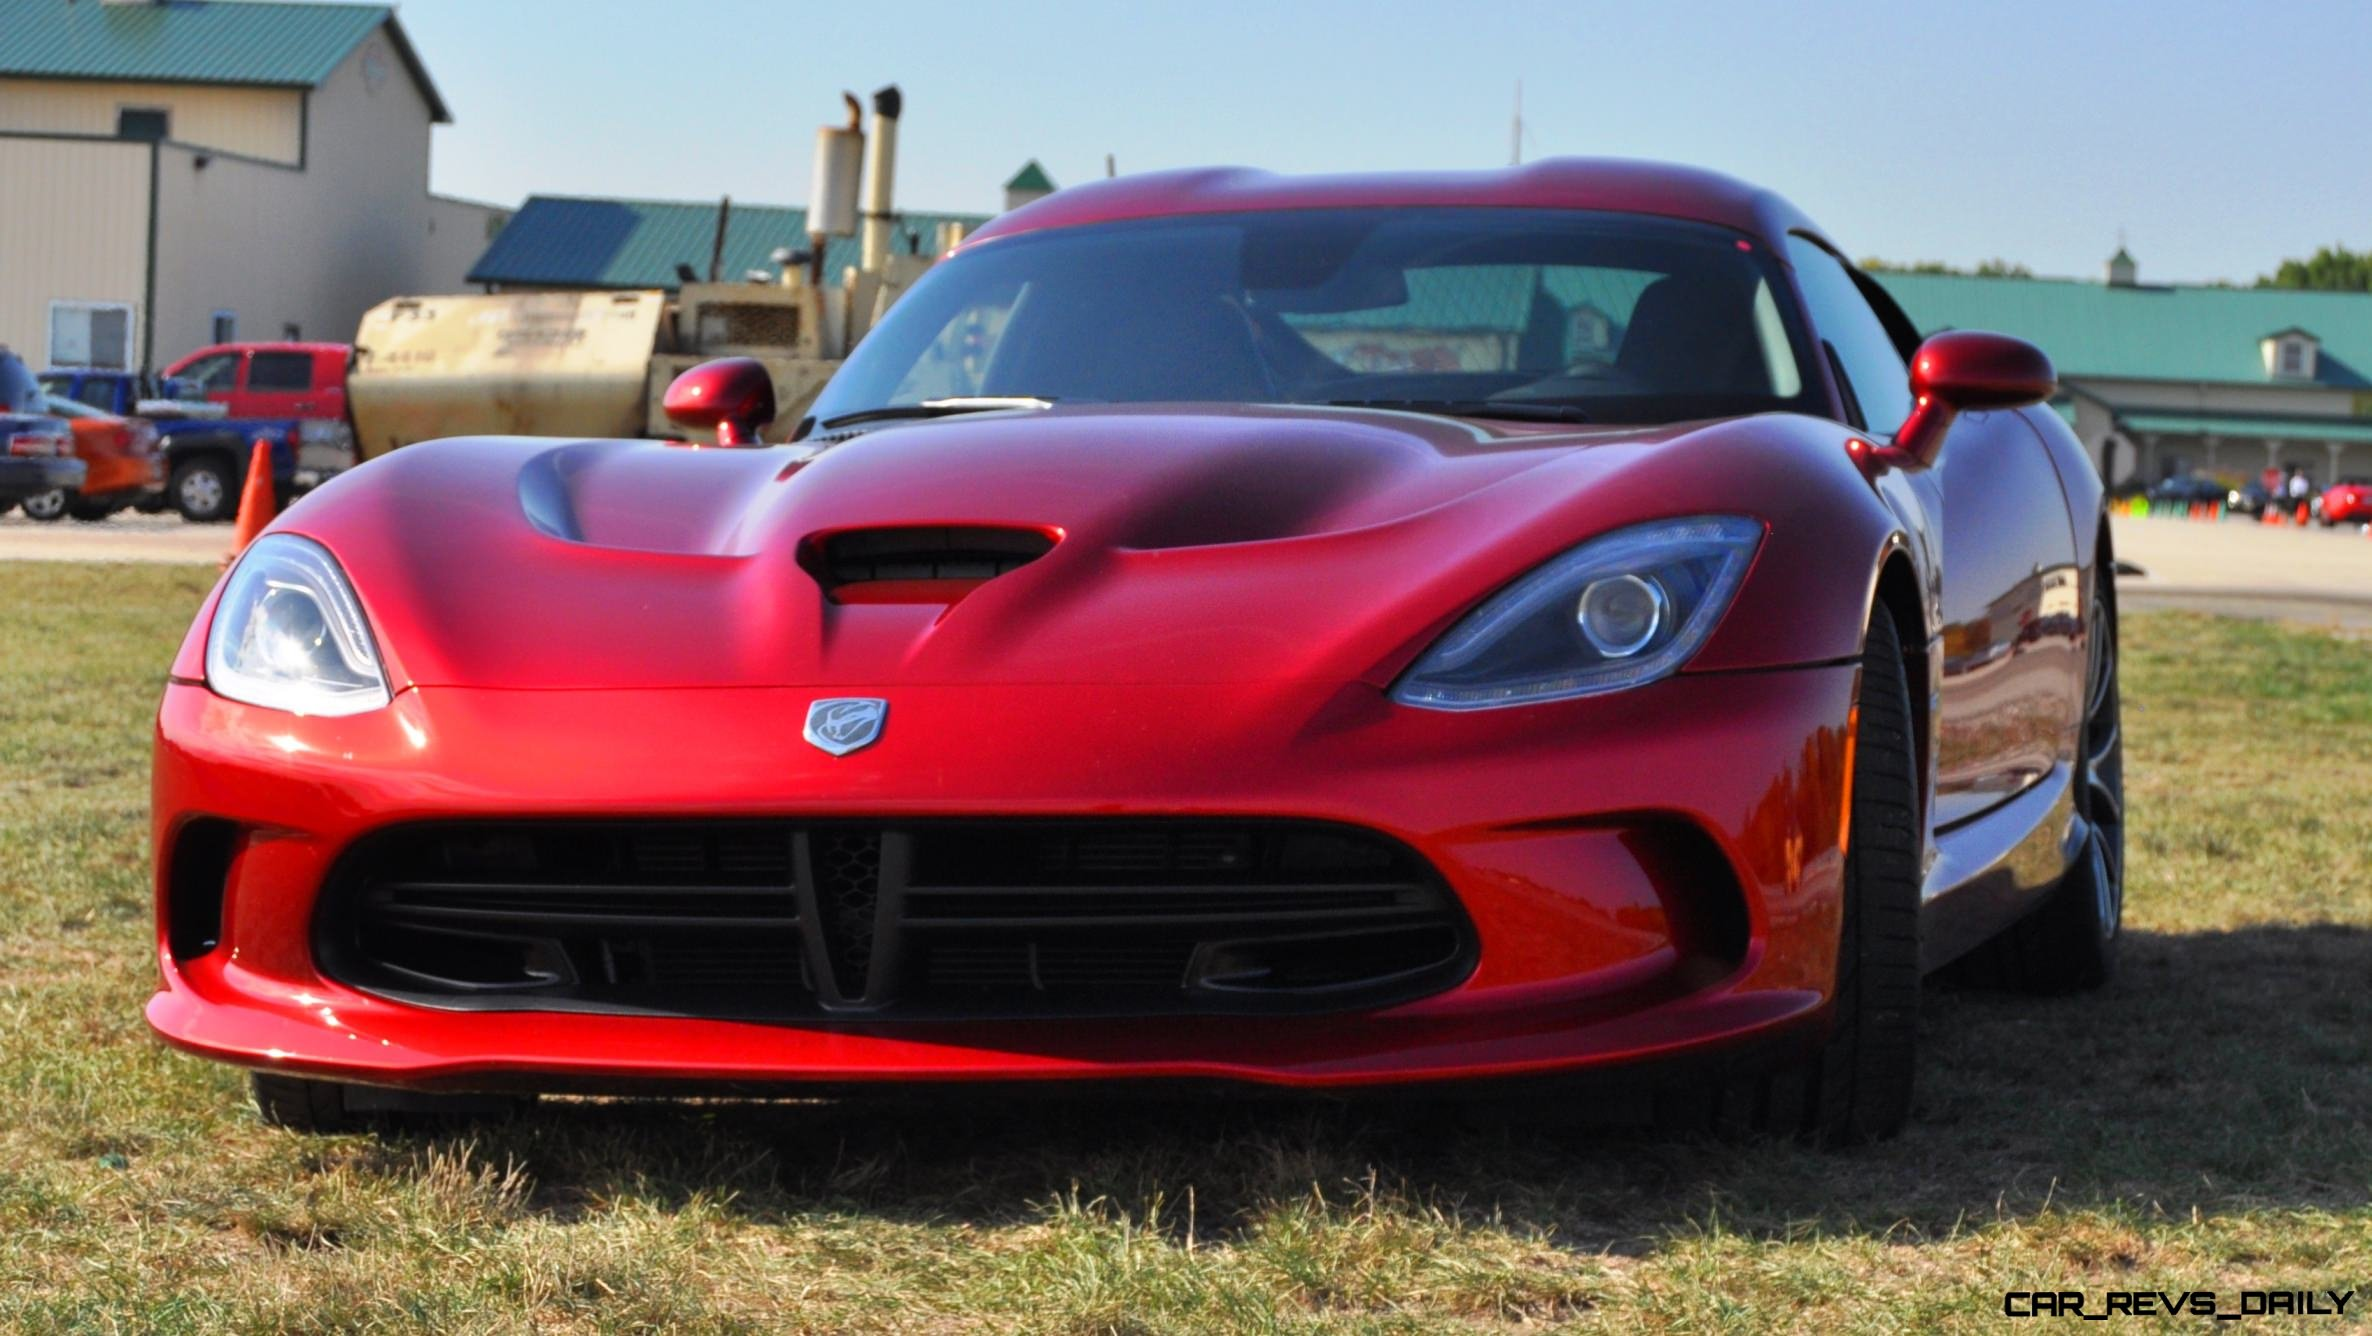 CarRevsDaily.com - 2014 SRT Viper GTS - Huge Wallpapers7